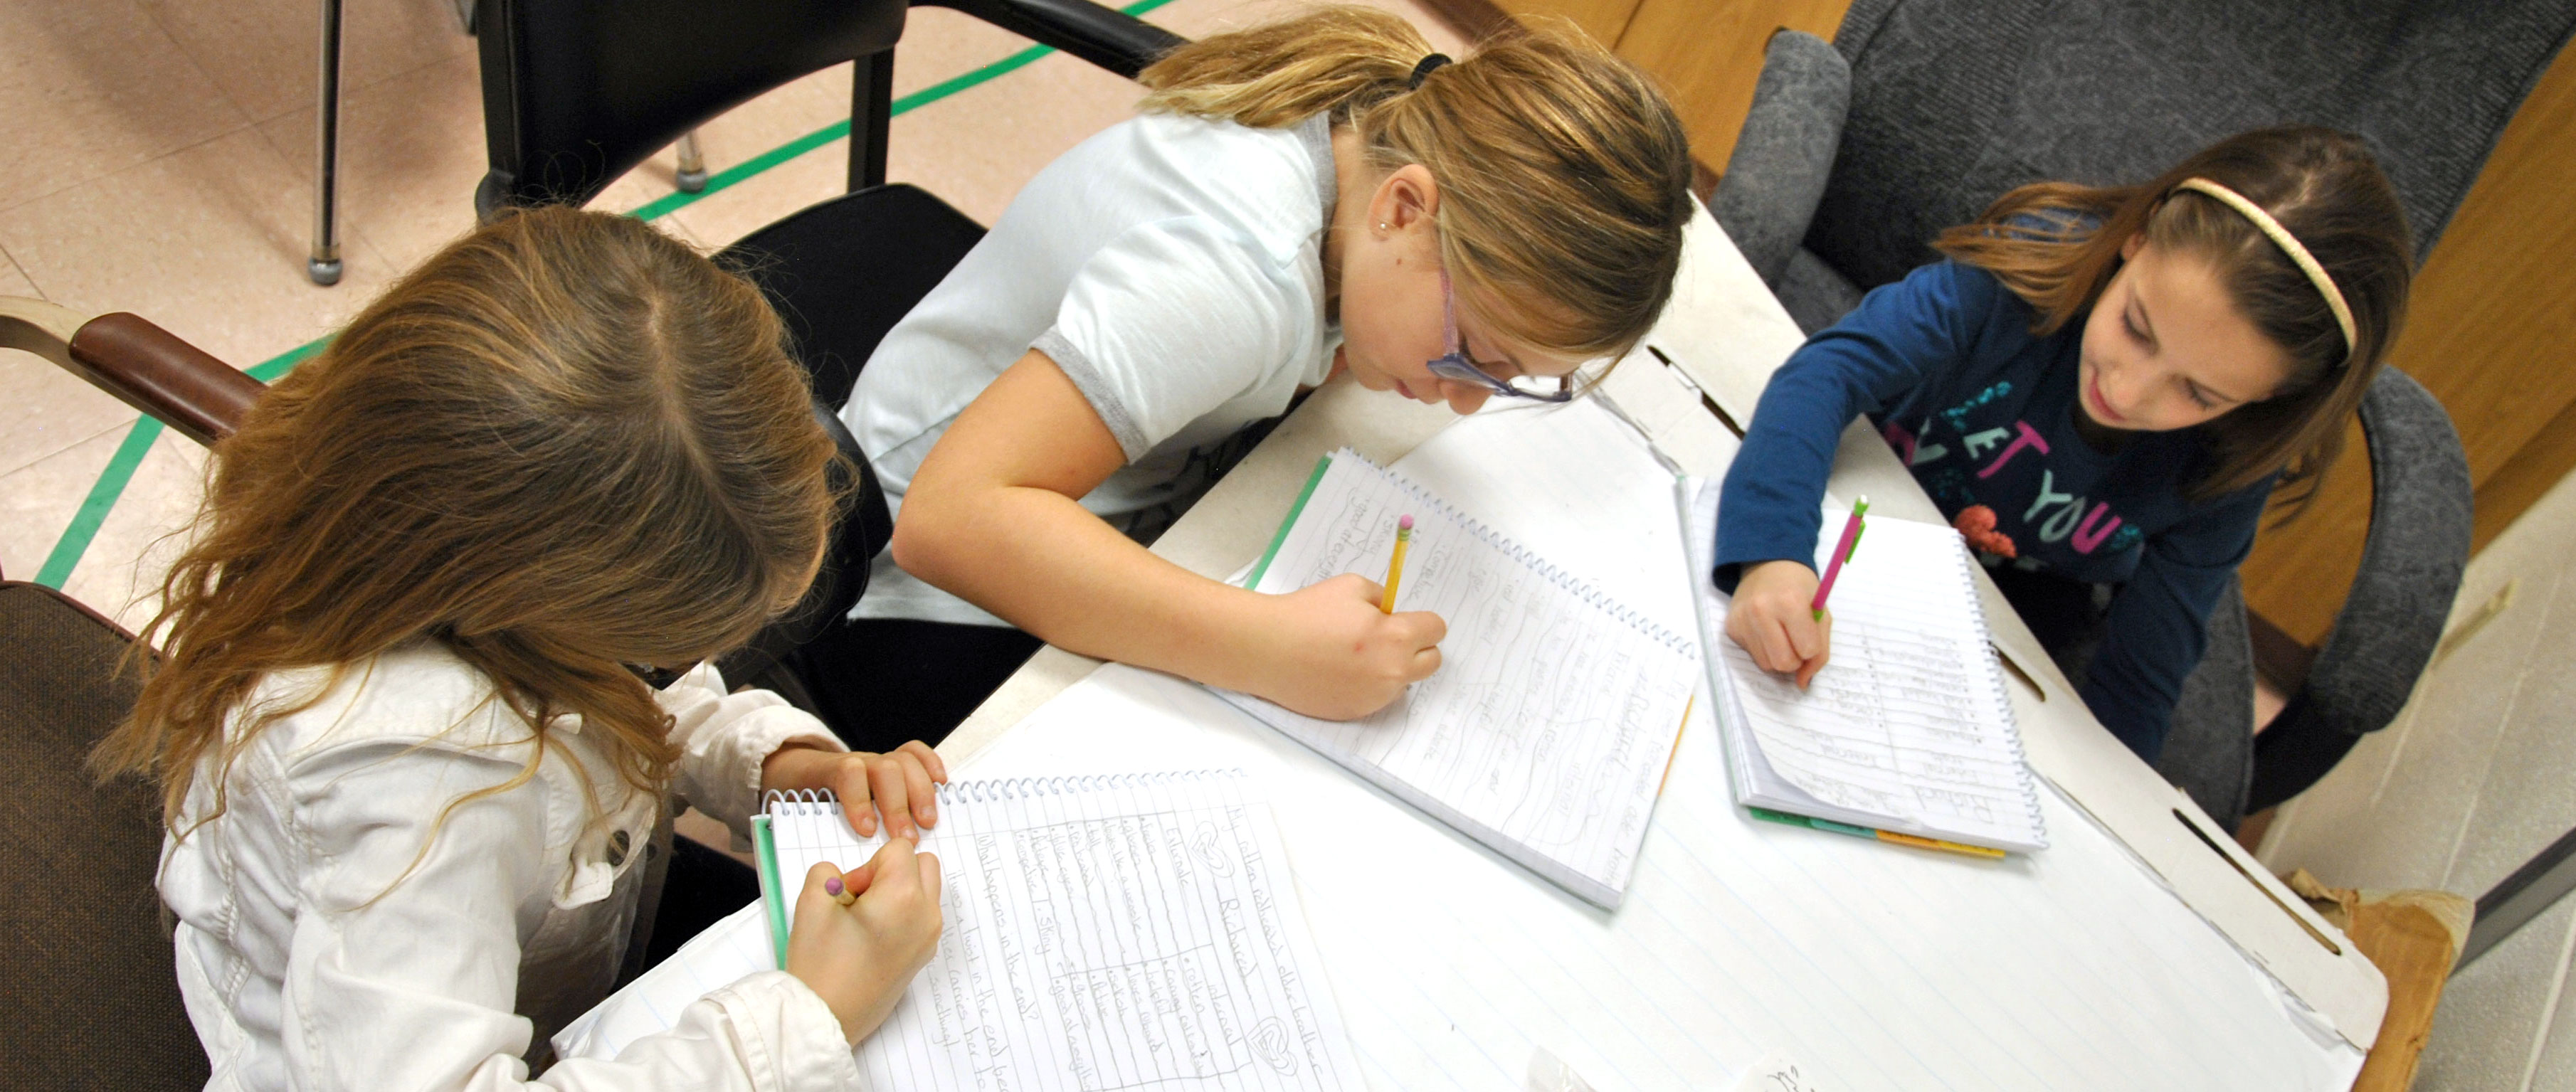 Three students write on their spiral notebooks.